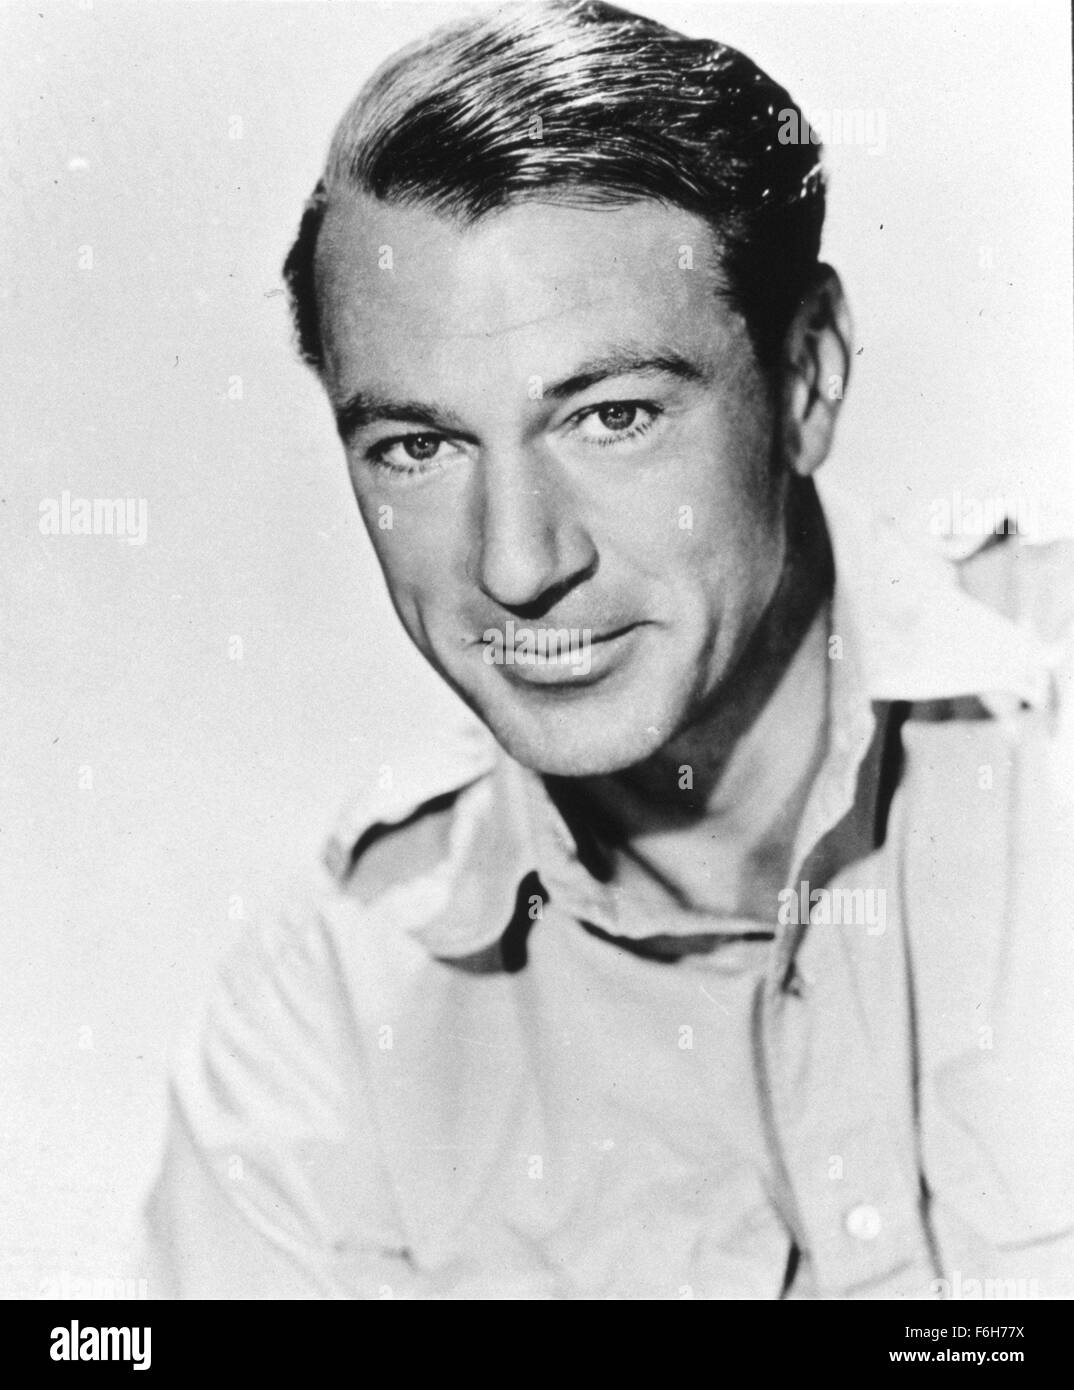 1943, Film Title: FOR WHOM THE BELL TOLLS, Director: SAM WOOD, Studio: PARAMOUNT, Pictured: GARY COOPER, HEAD SHOT. - Stock Image